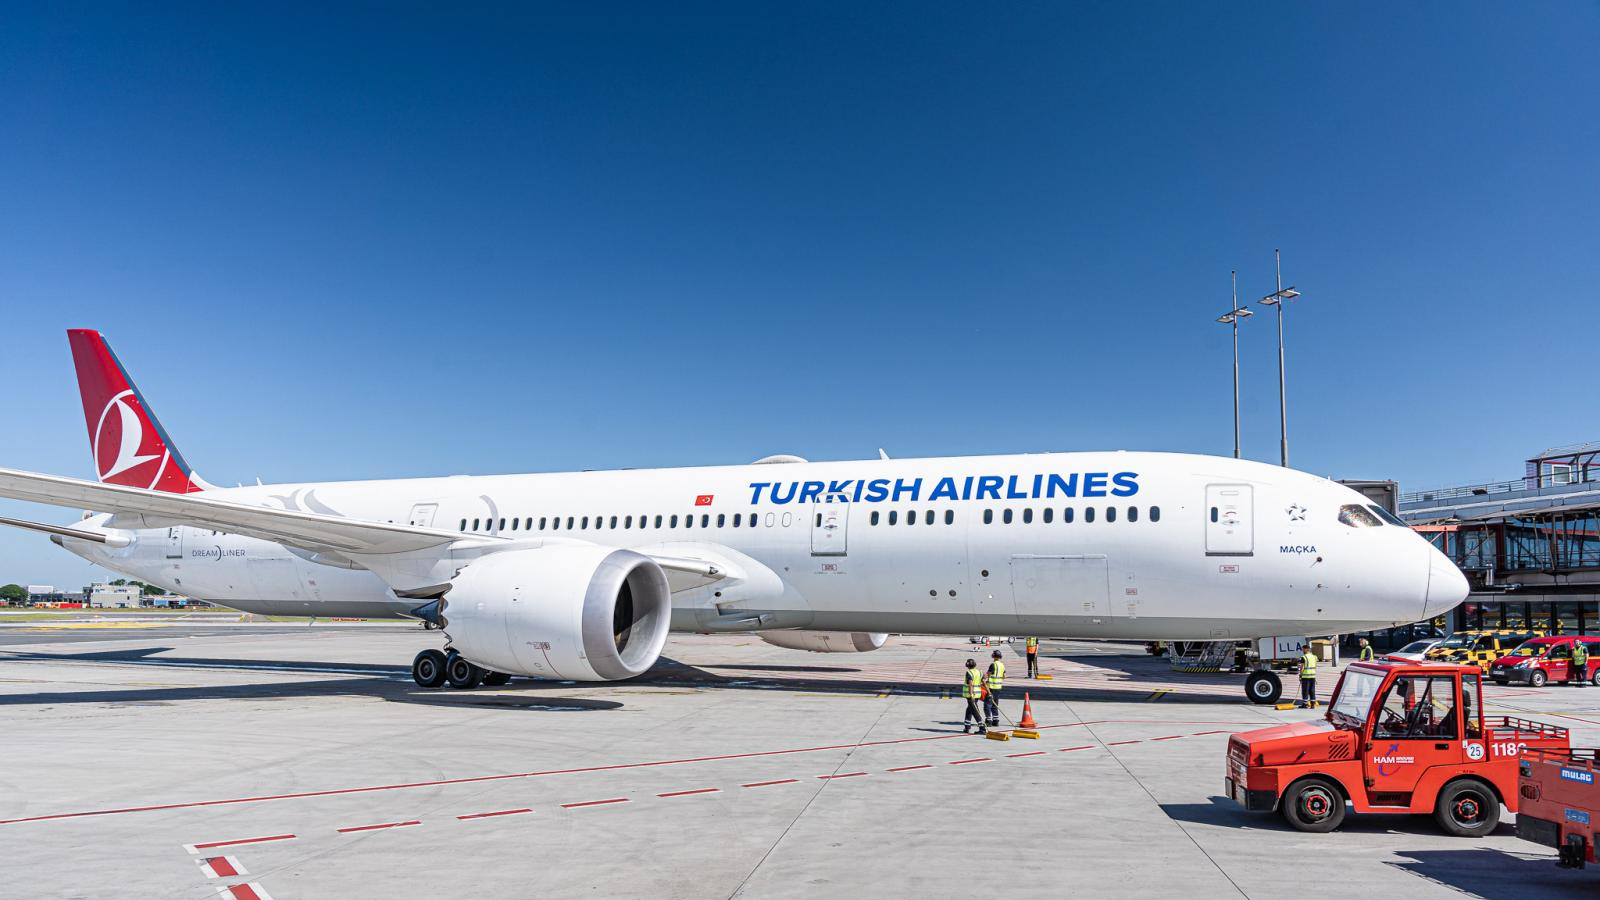 Turkish Airlines aircraft